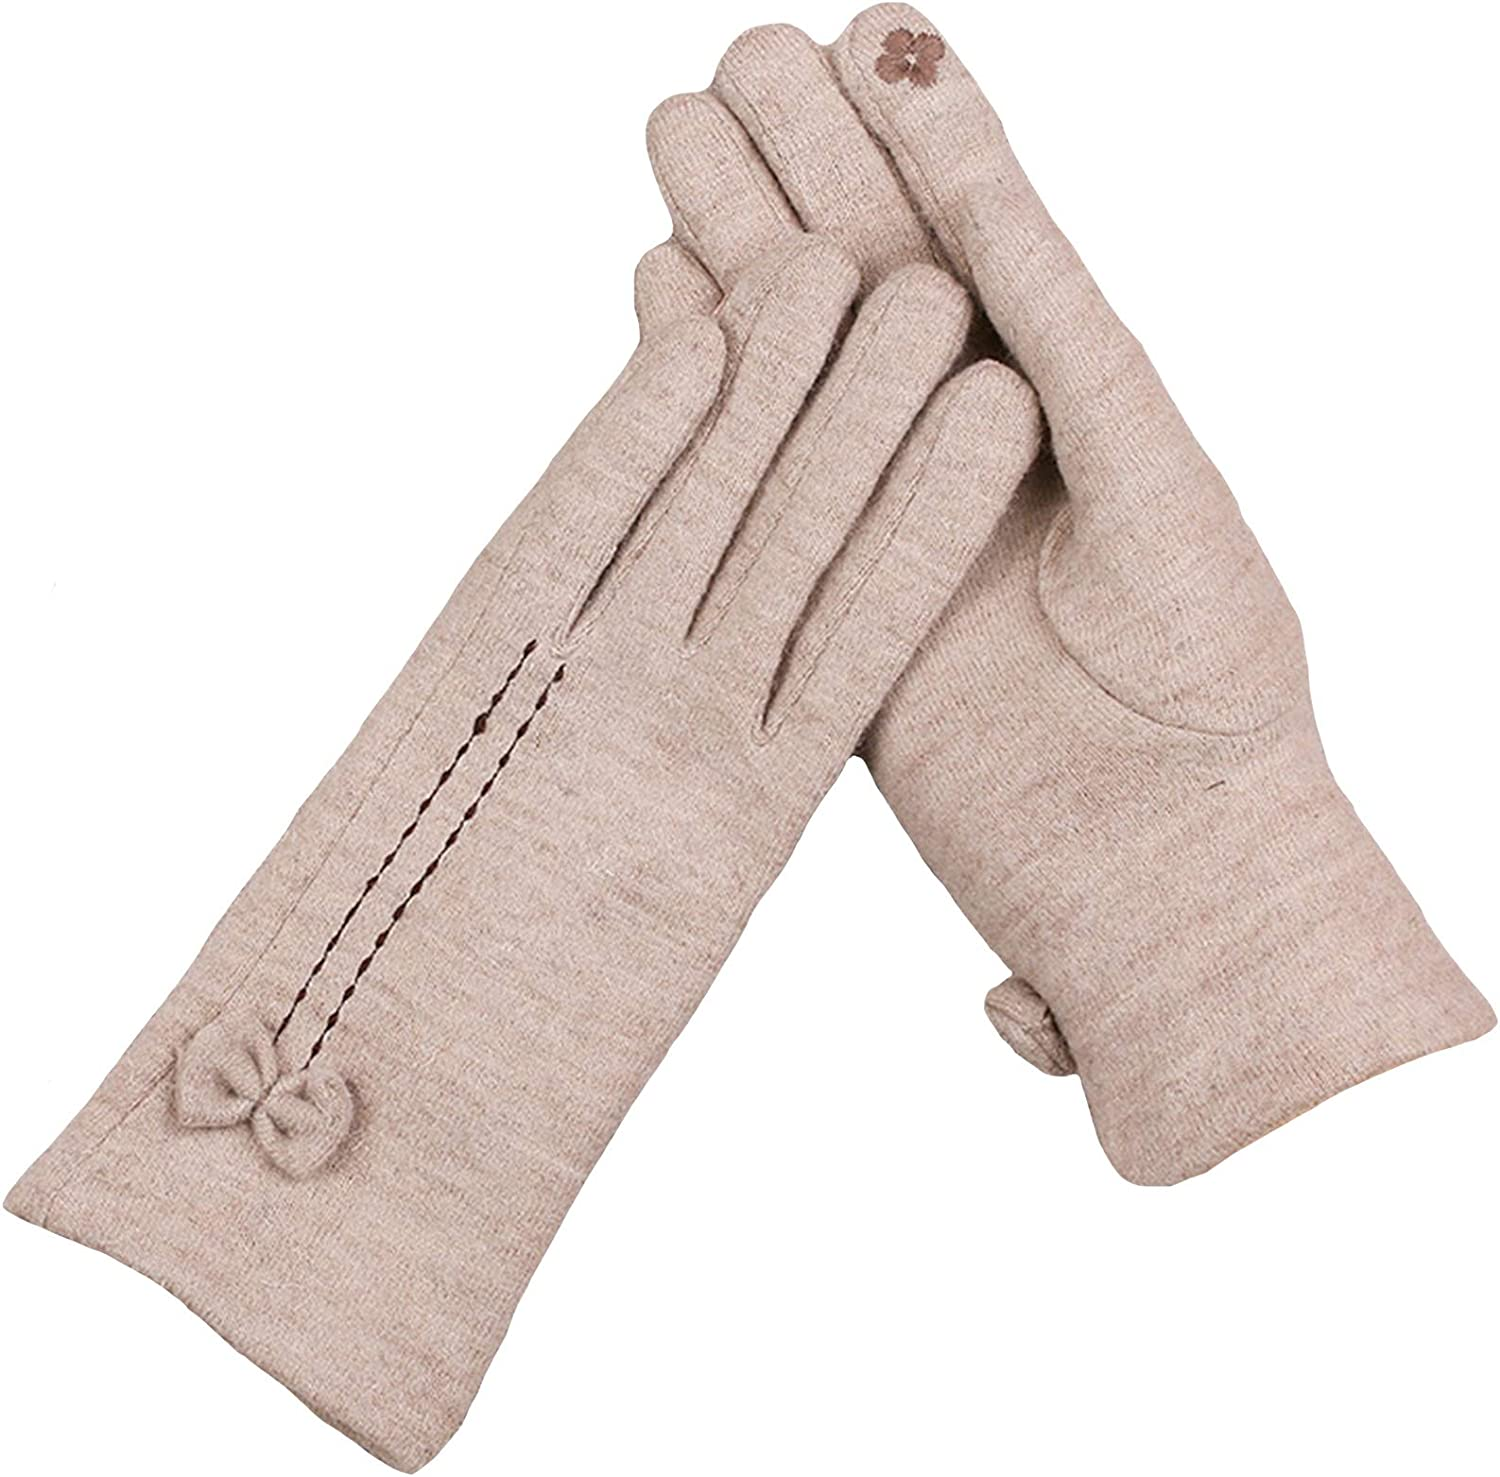 ZHANGYAN Gloves Winter Ladies Gloves Plus Velvet Thick Warm Gloves Driving and Riding Touch Screen Gloves Student Cute Winter Gloves (Color : Beige)